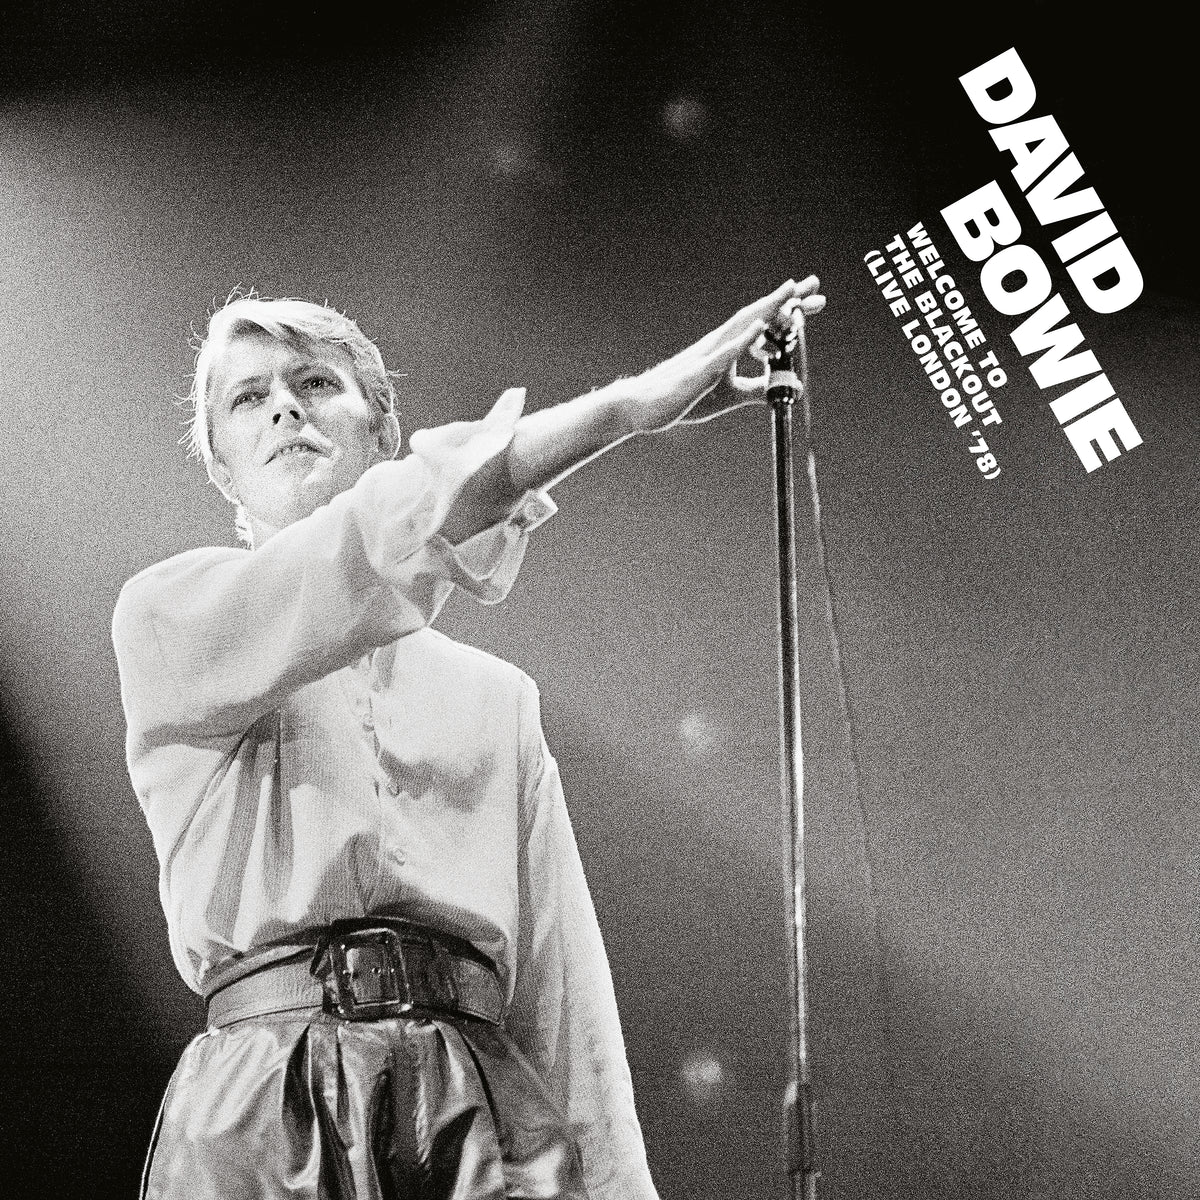 David Bowie: Welcome To The Blackout - Live London '78 Vinyl 3LP (Record Store Day)